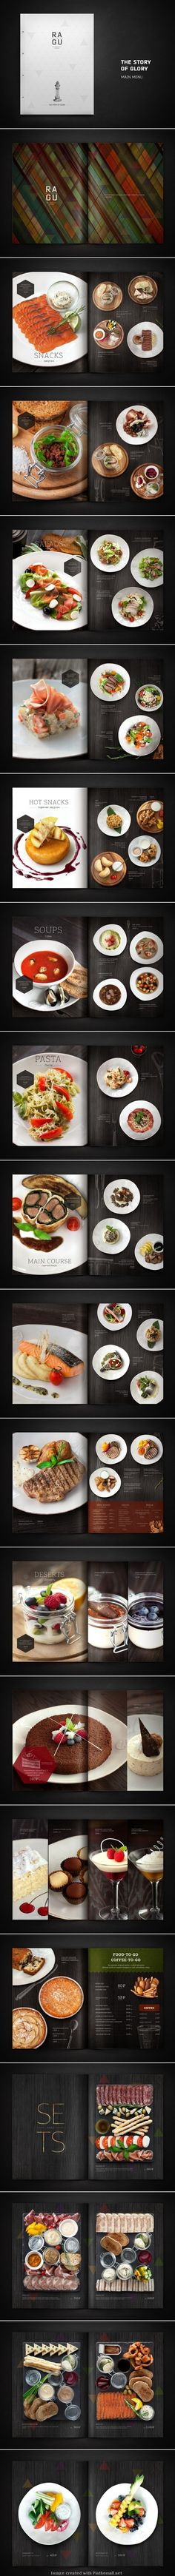 There is nothing better in a menu than high quality pictures of the food. The polished black wood in the background mimics a table setting and makes the pictures of the food pop. The larger image on the left serves as a balance for the three smaller dishes on the right.